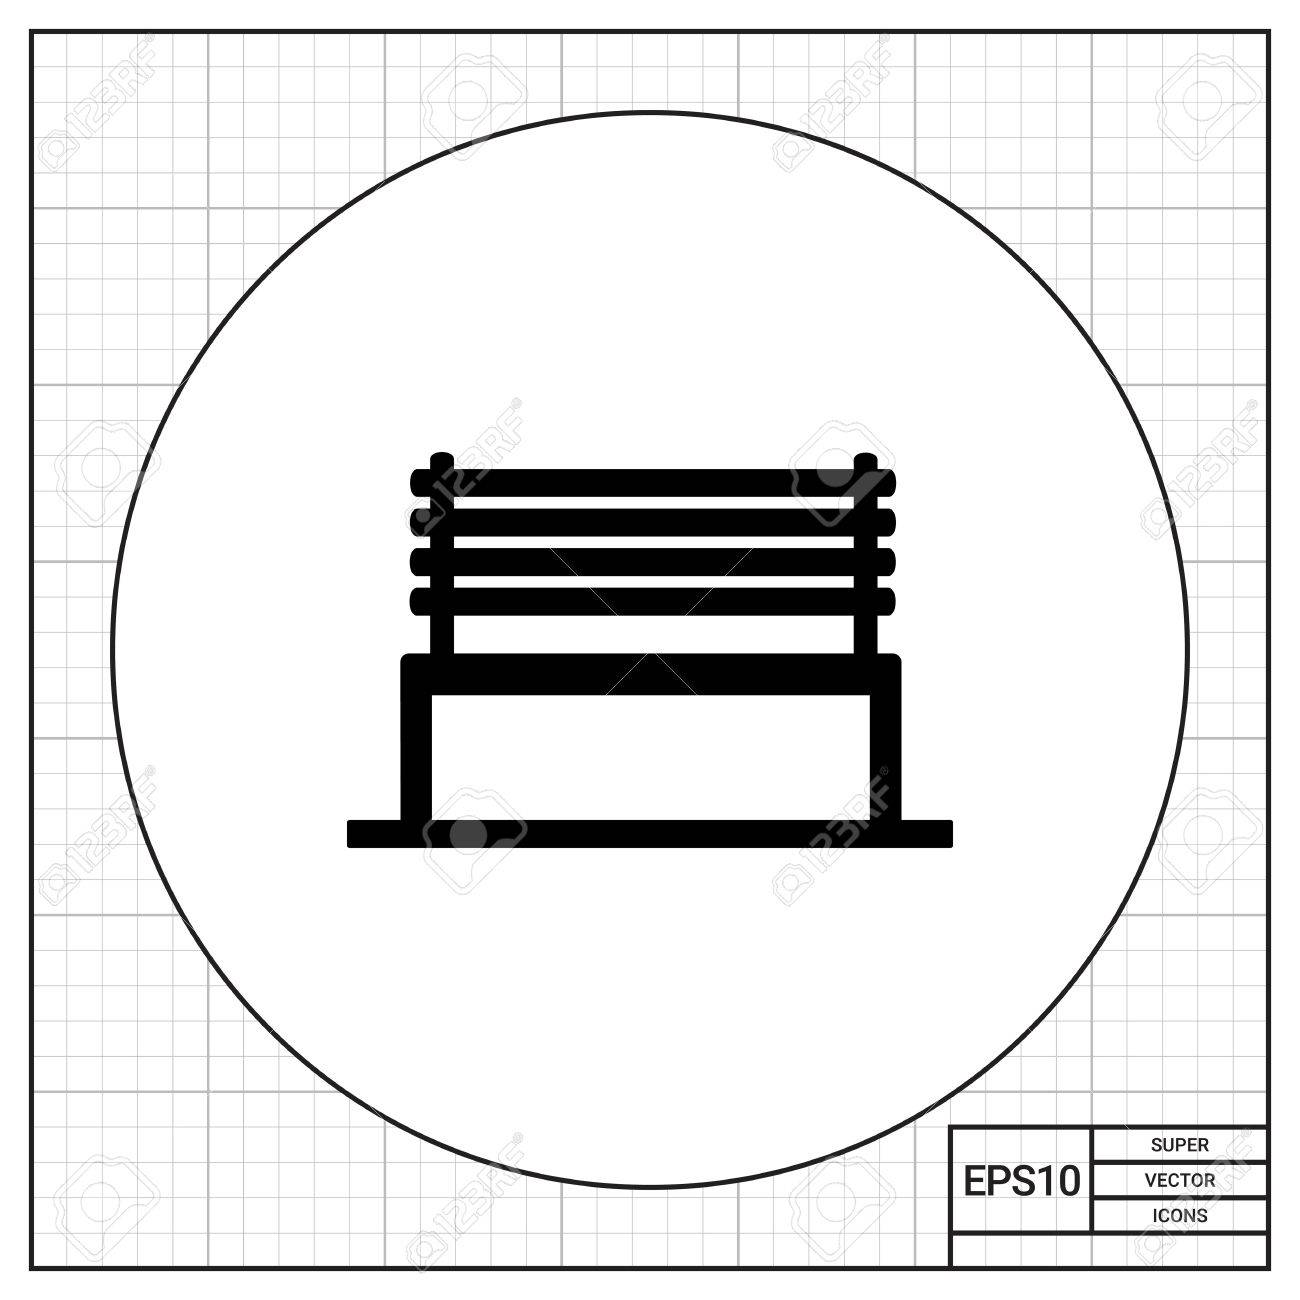 Groovy Monochrome Vector Icon Of Park Bench With Back Made Of Wooden Gmtry Best Dining Table And Chair Ideas Images Gmtryco